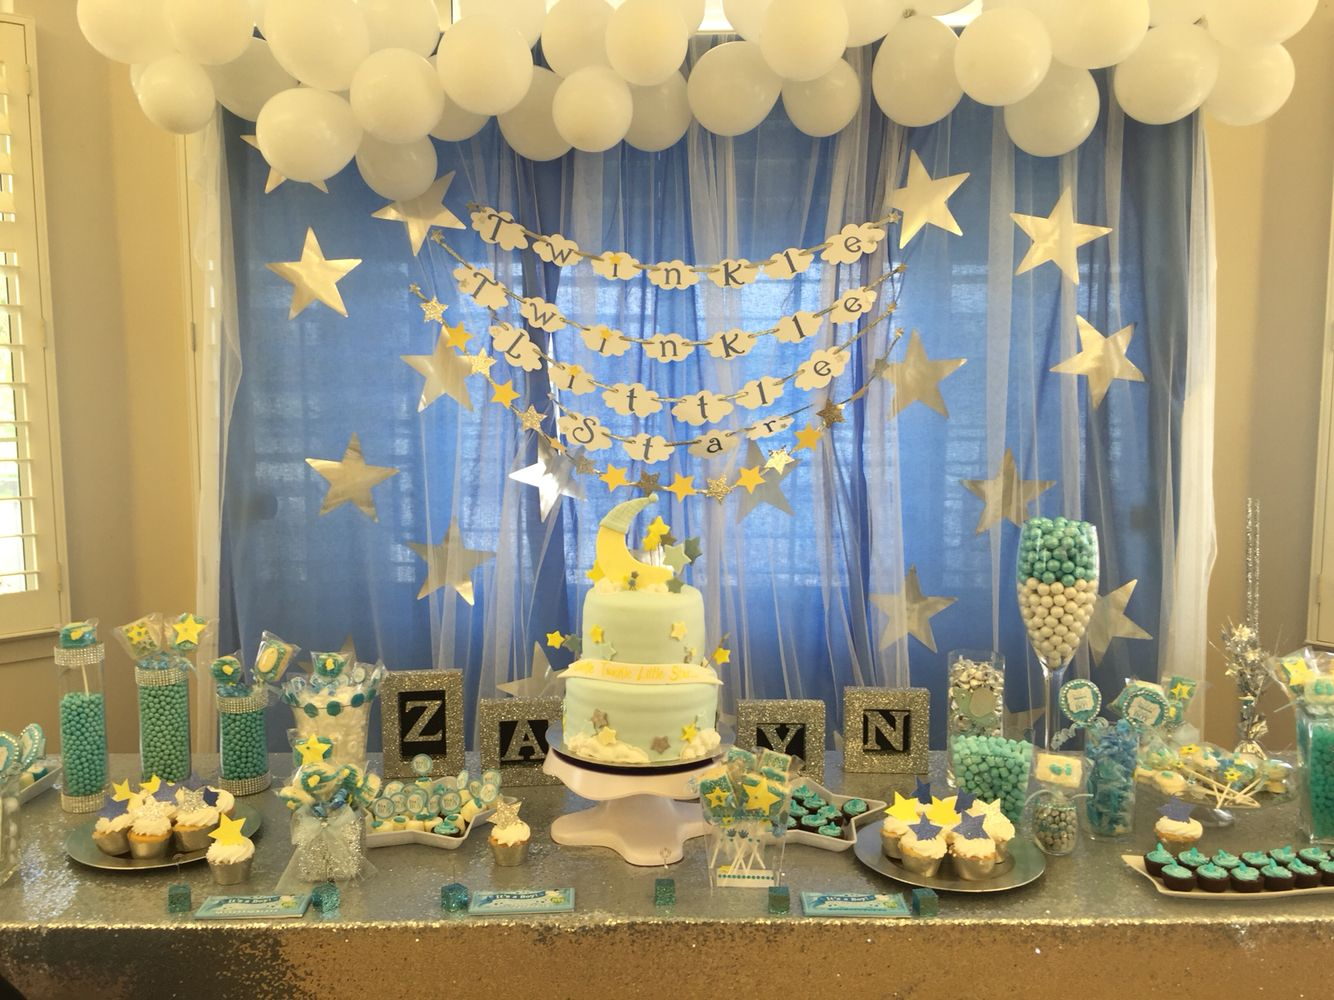 Twinkle twinkle little star baby shower baby shower pinterest star baby showers twinkle - Baby shower party ...